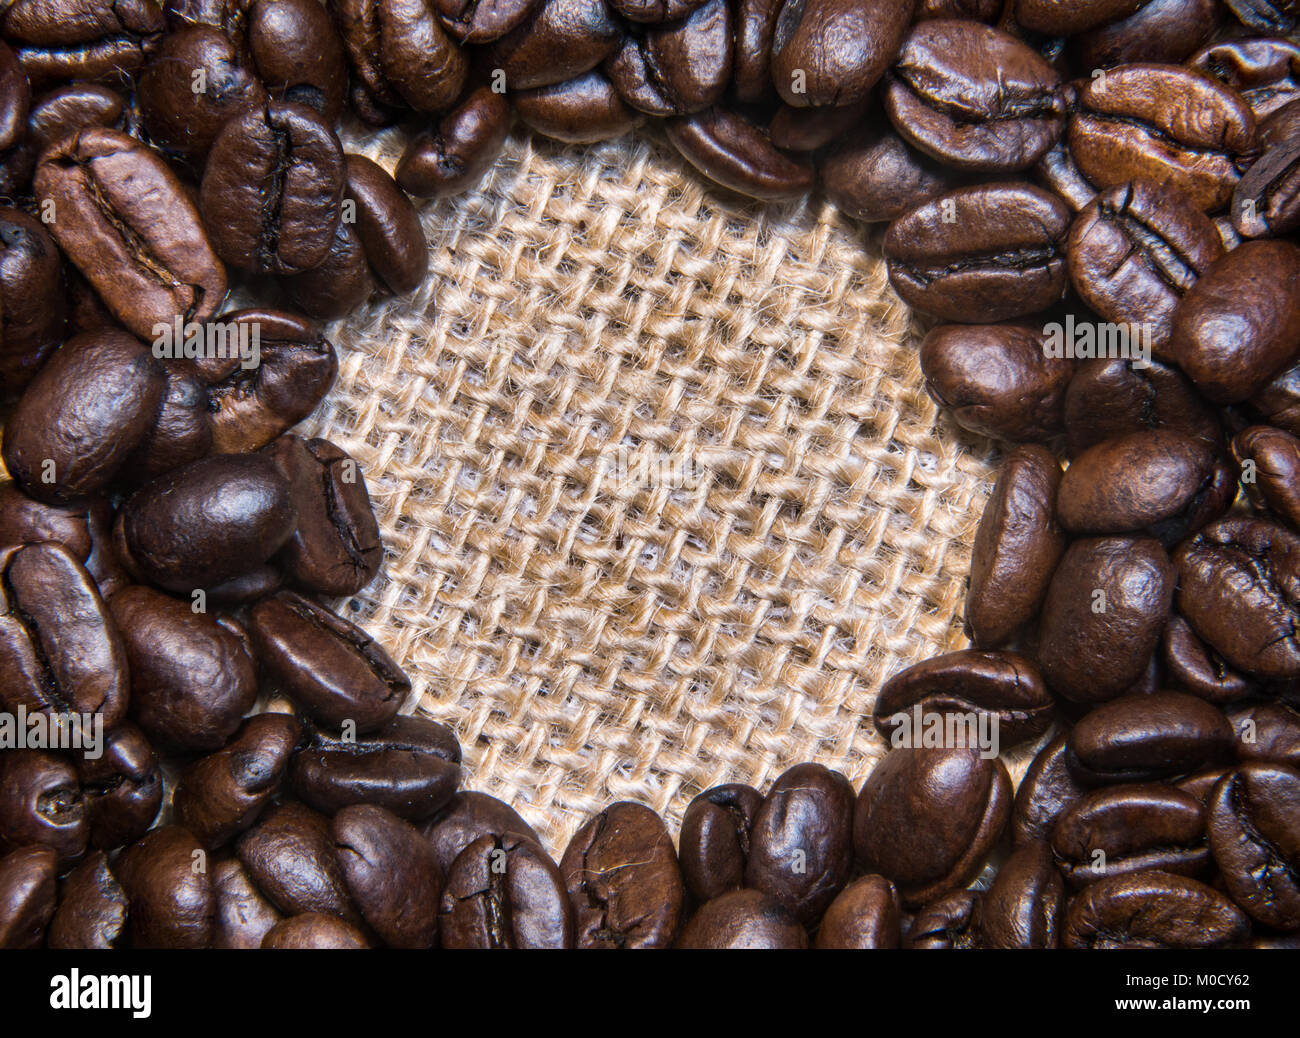 Roasted Coffee Beans on a Burlap Cloth Awaiting Your Words Stock Photo